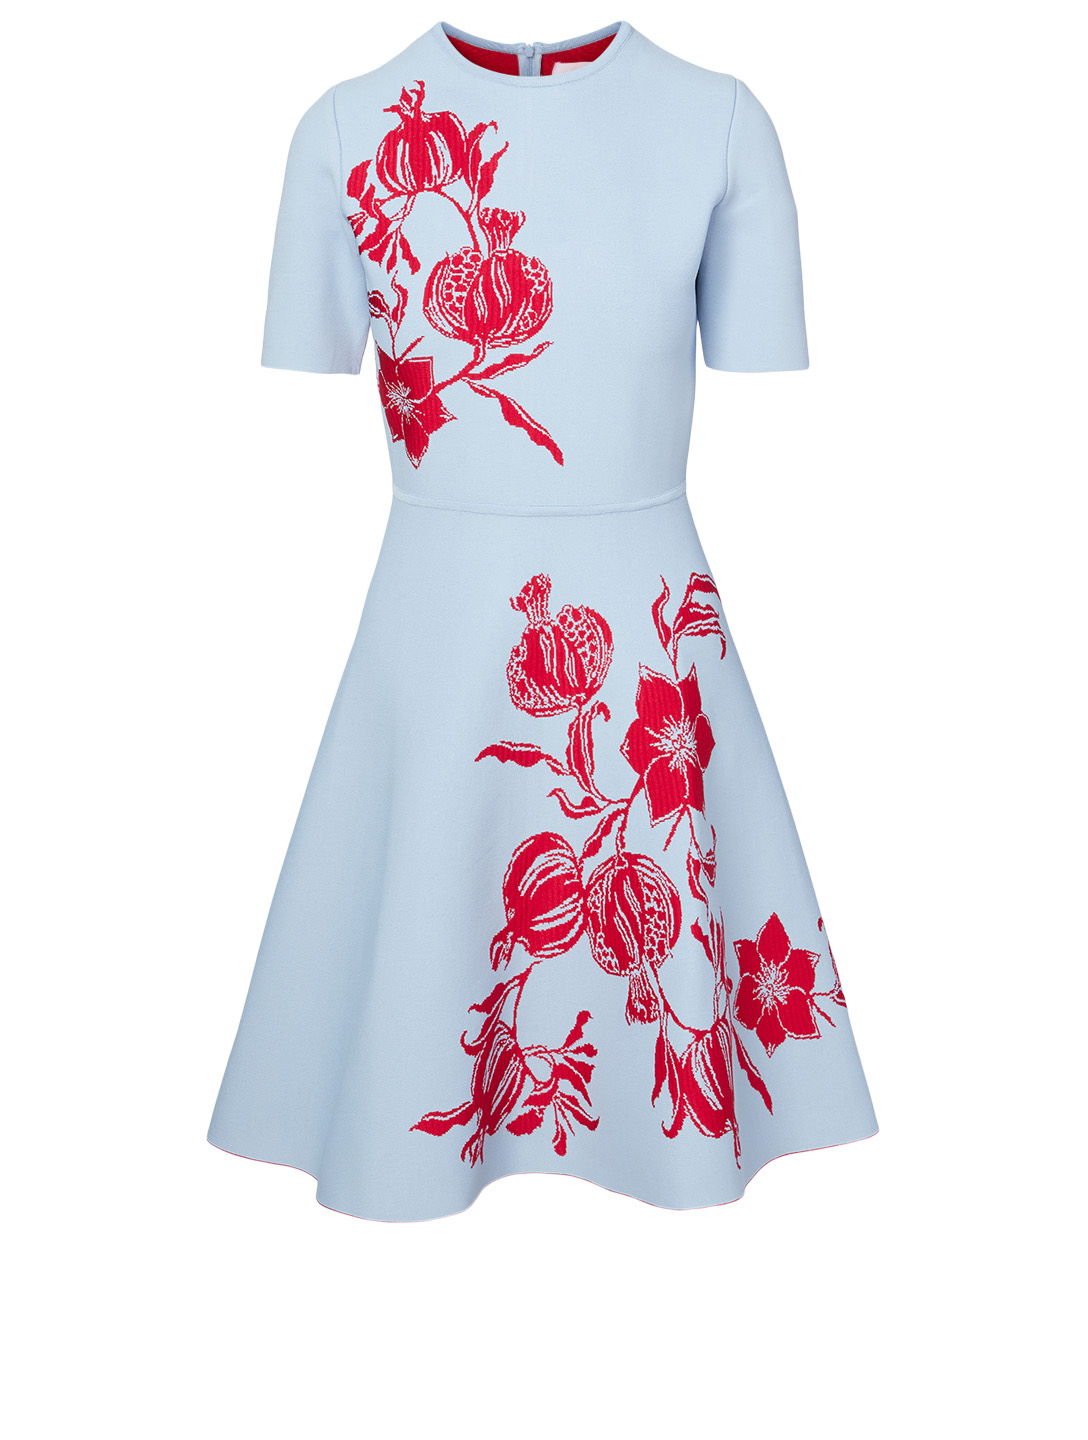 CAROLINA HERRERA Short-Sleeve Dress In Rose Print Women's Blue